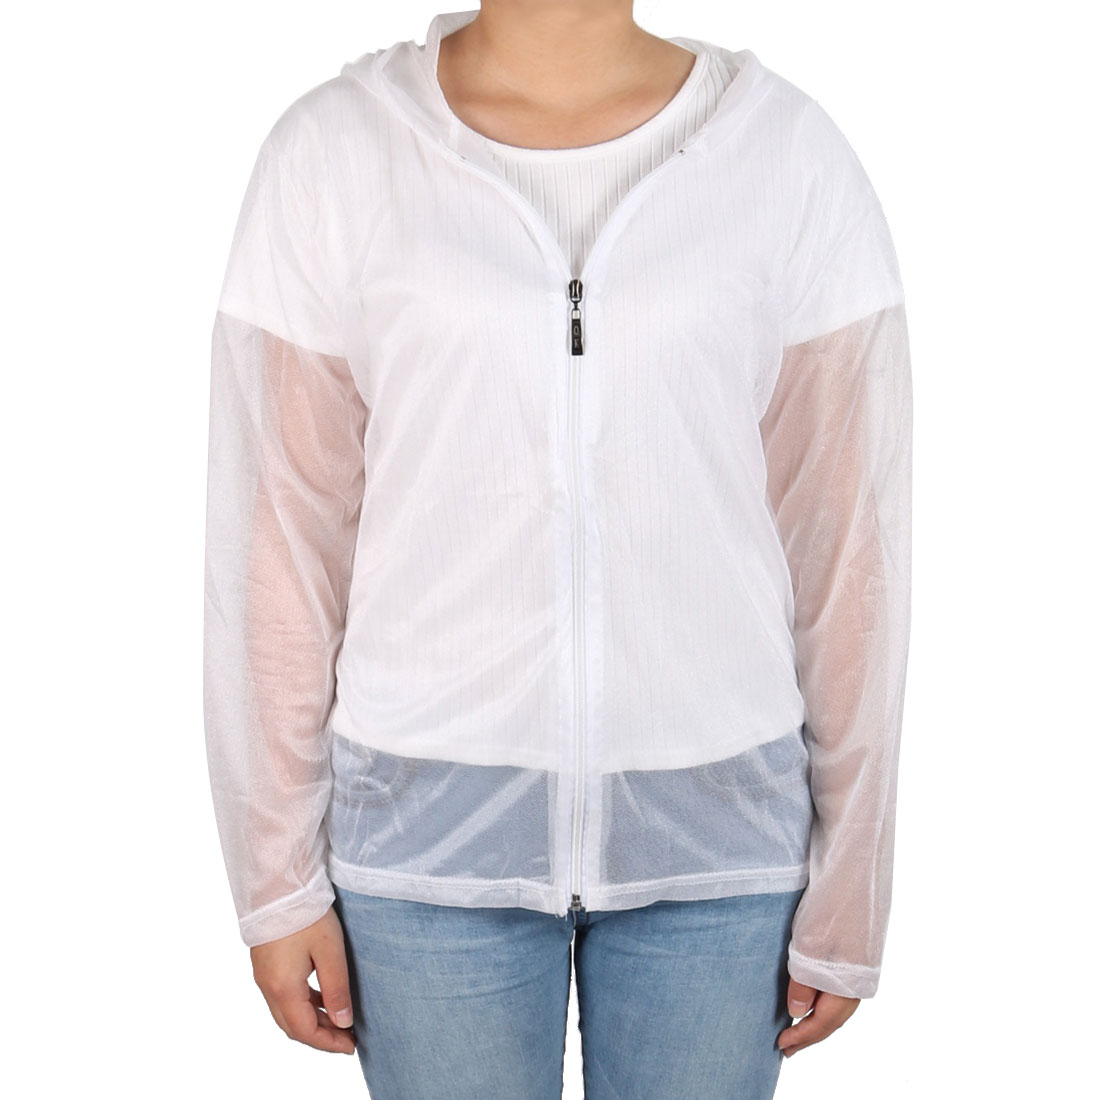 Outdoor Women Summer Sun UV Protection Transparent Clothing Hooded Jacket White